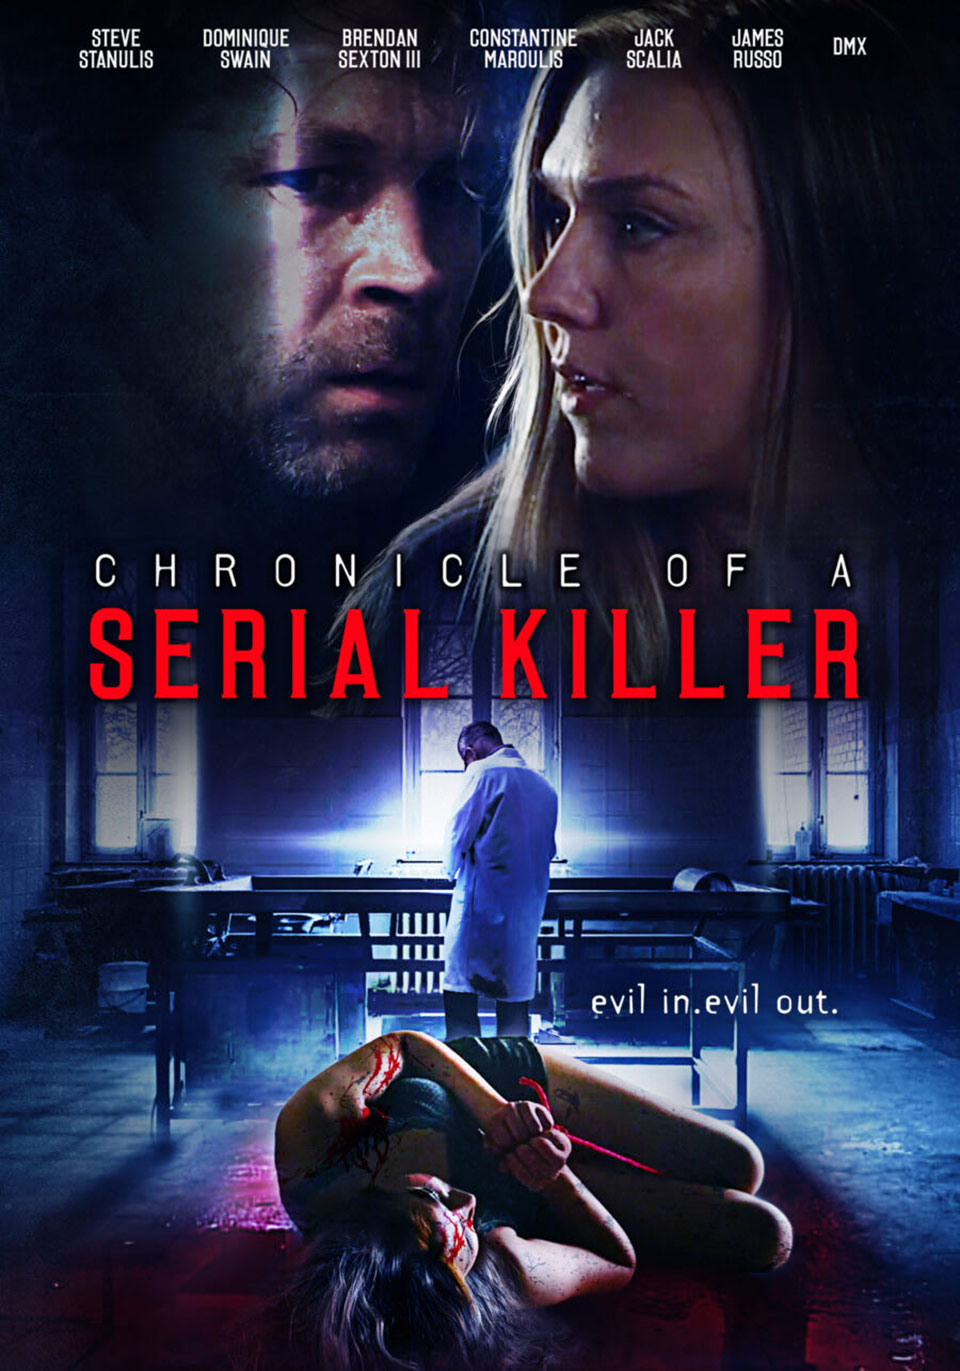 Chronicle of a Serial Killer by Steve Stanulis